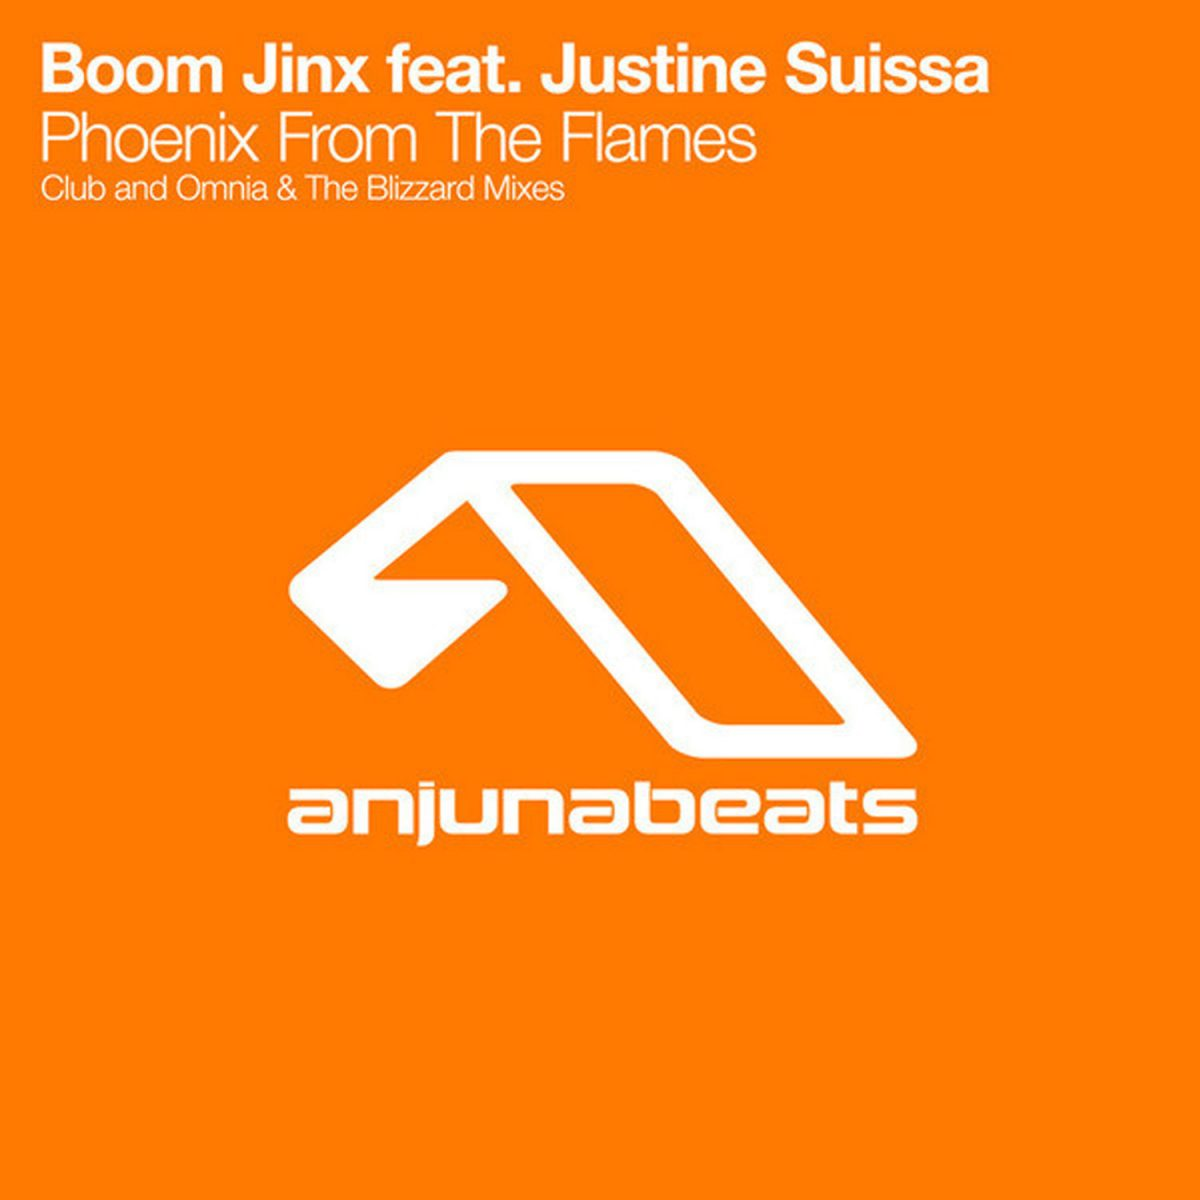 Boom Jinx & The Blizzard - Senja (The Blizzard's Midnight Sun Mix) on Anjunabeats